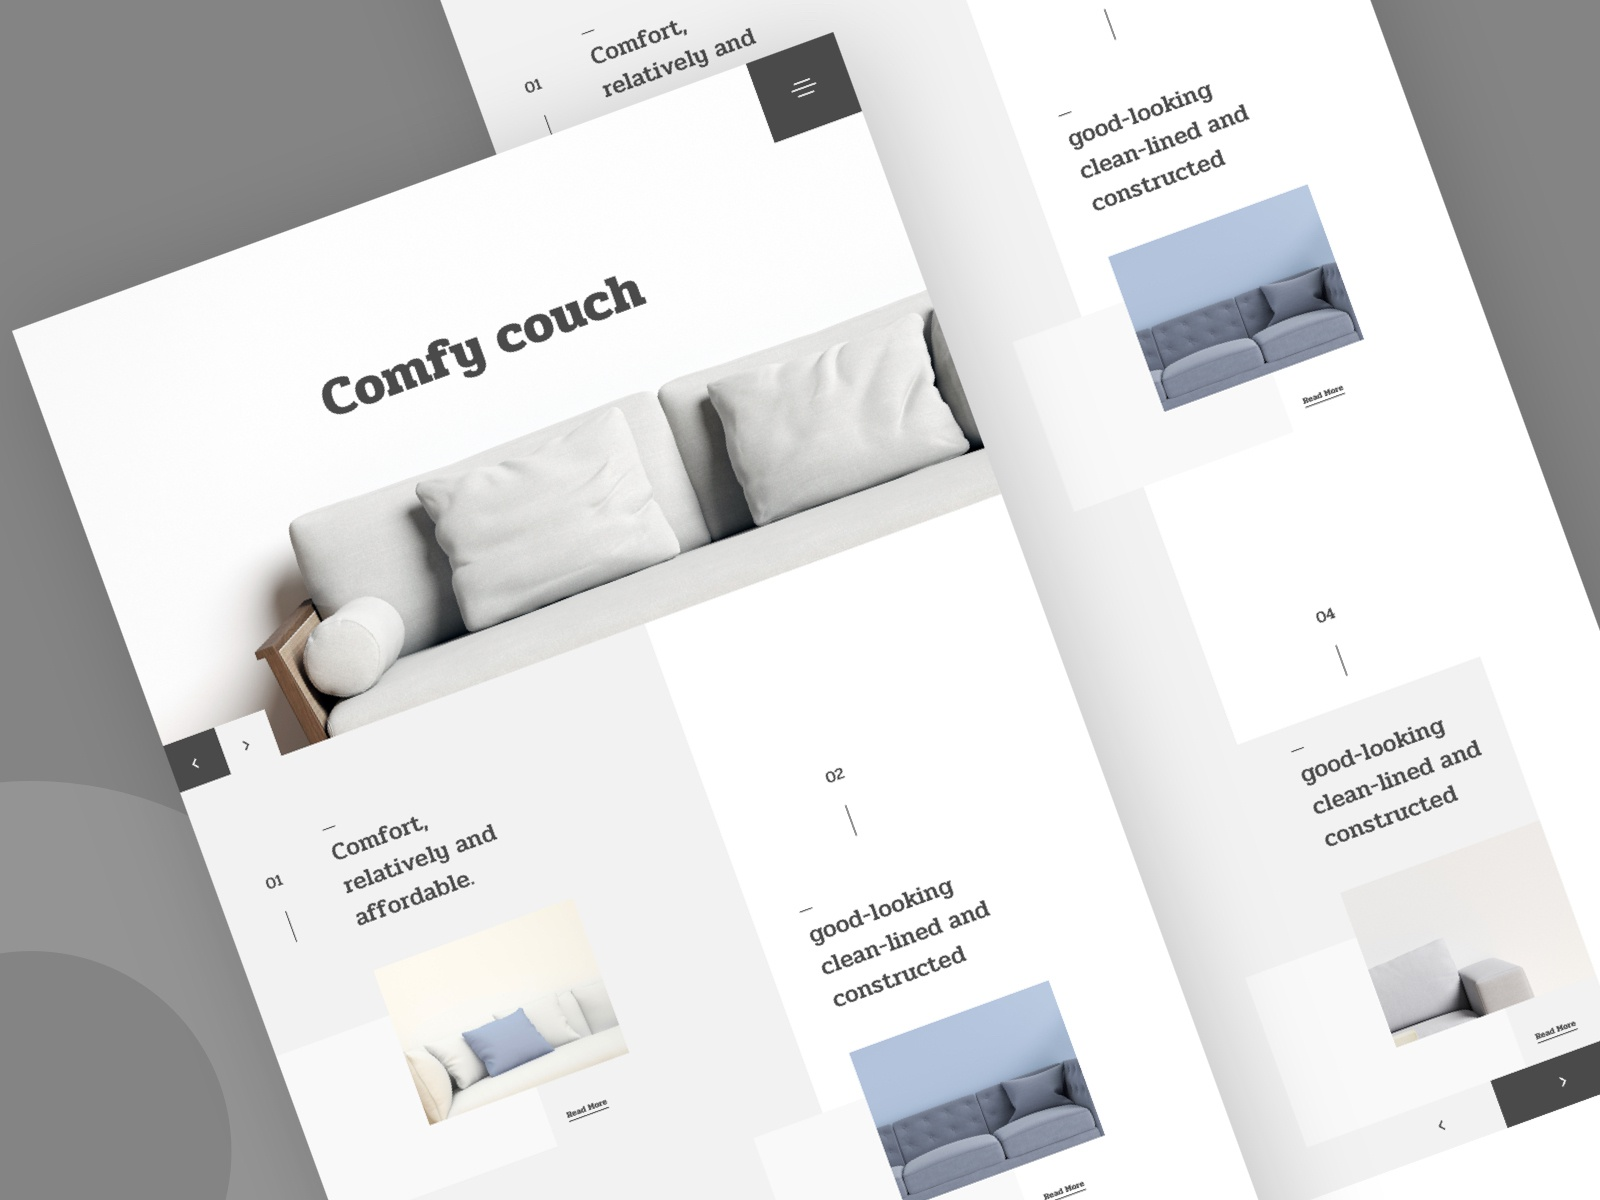 Comfy Couch Landing Page minimal furniture web design furniture web design furniture store uiux chilling mantis minimal web design ecommerce template ecommerce theme ecommerce design landing page minimal ux web design ui